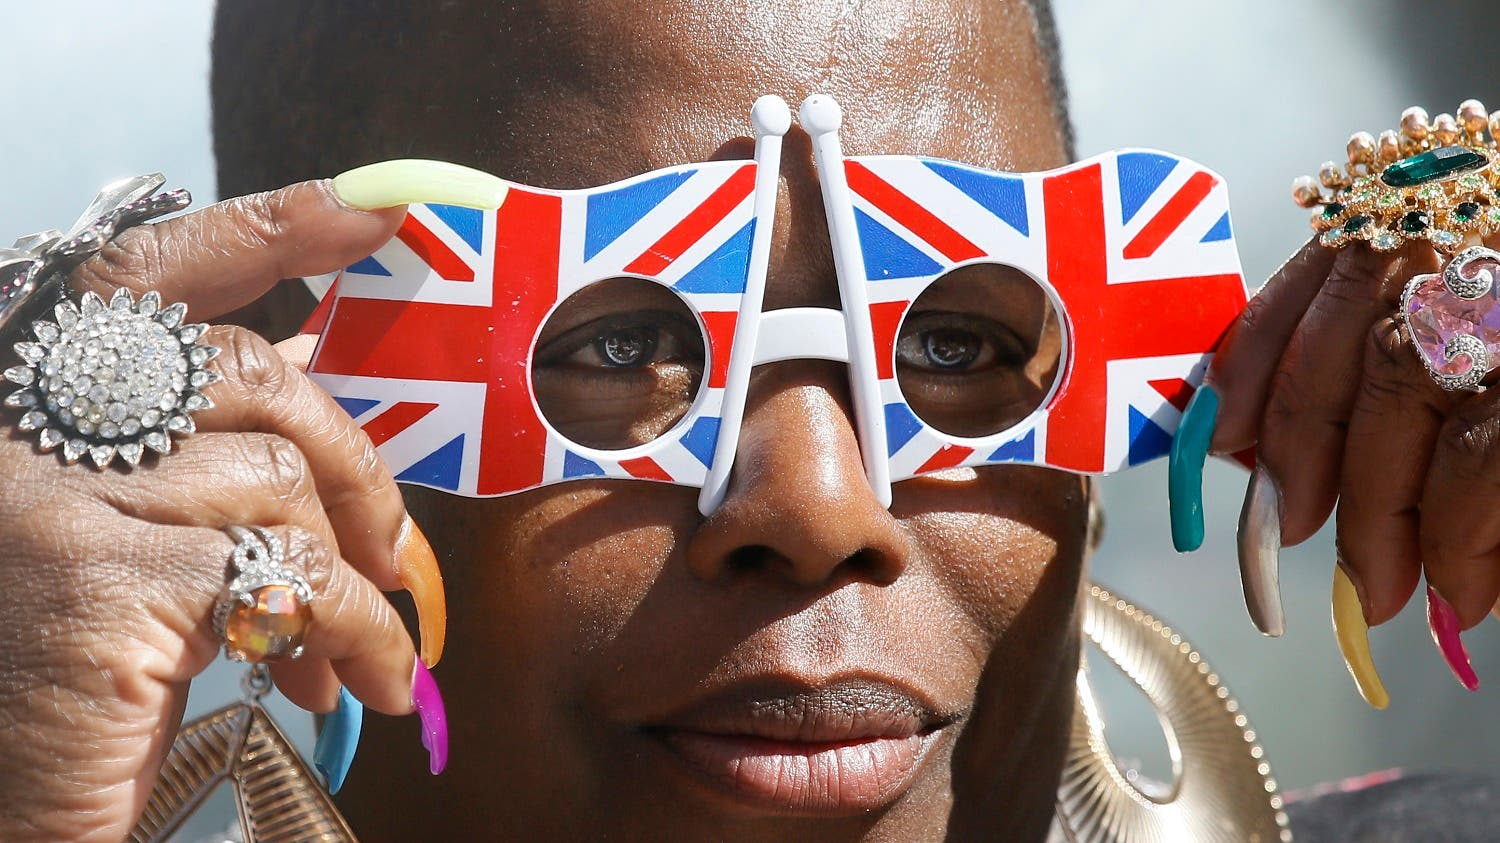 A royal fan adjusts her Union flag glasses, in Windsor, England, Wednesday, April 20, 2016. Royal fans are gathering in Windsor ahead of Thursday's celebrations for the 90th birthday of Britain's Queen Elizabeth II. (AP)